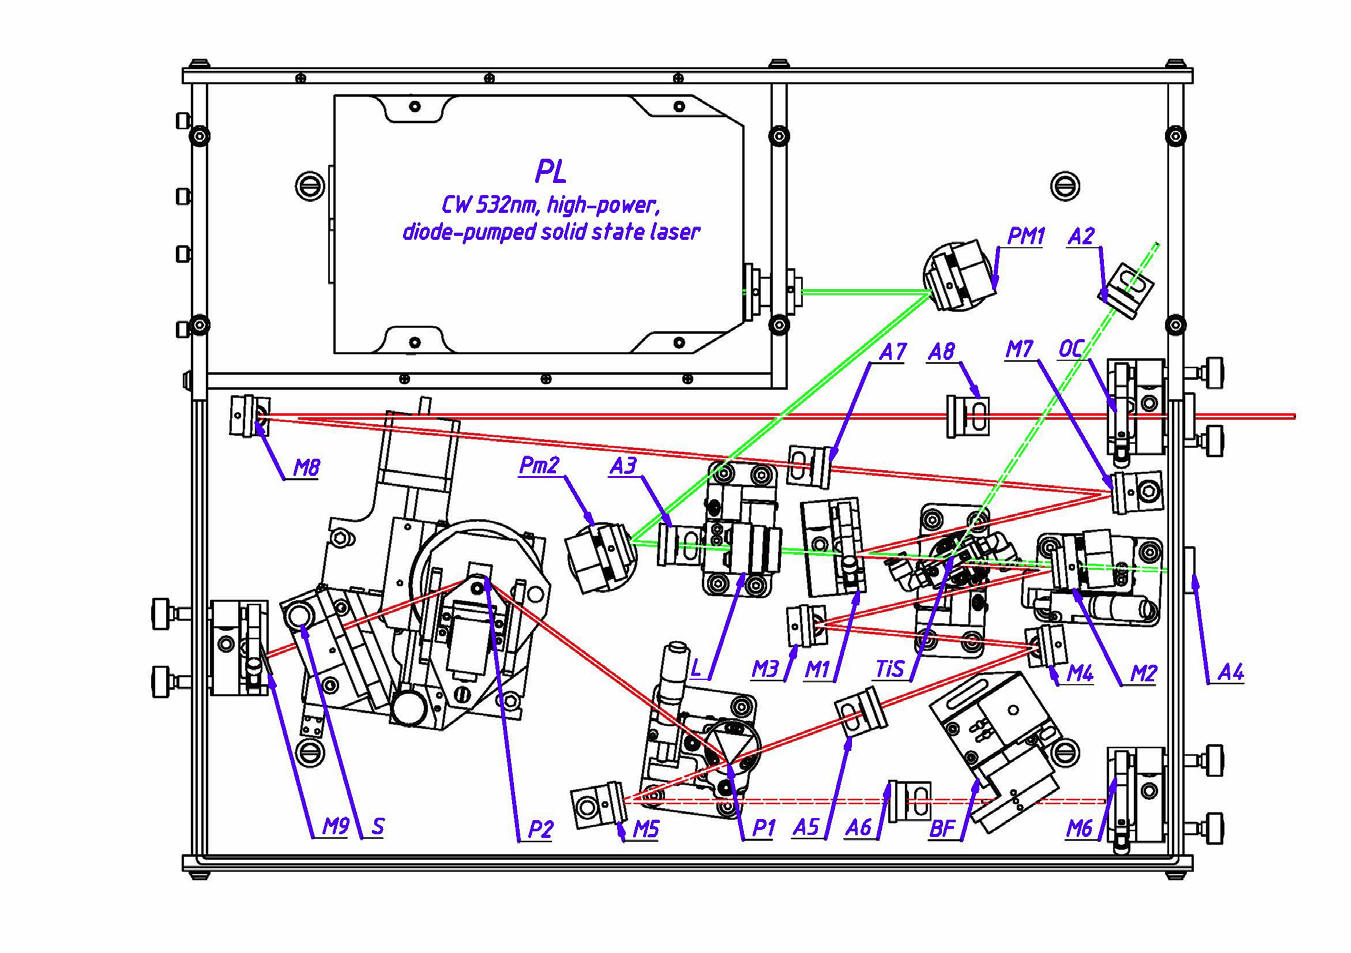 Schematic setup of Trestles femtoseconds/CW laser system with built-in pump laser